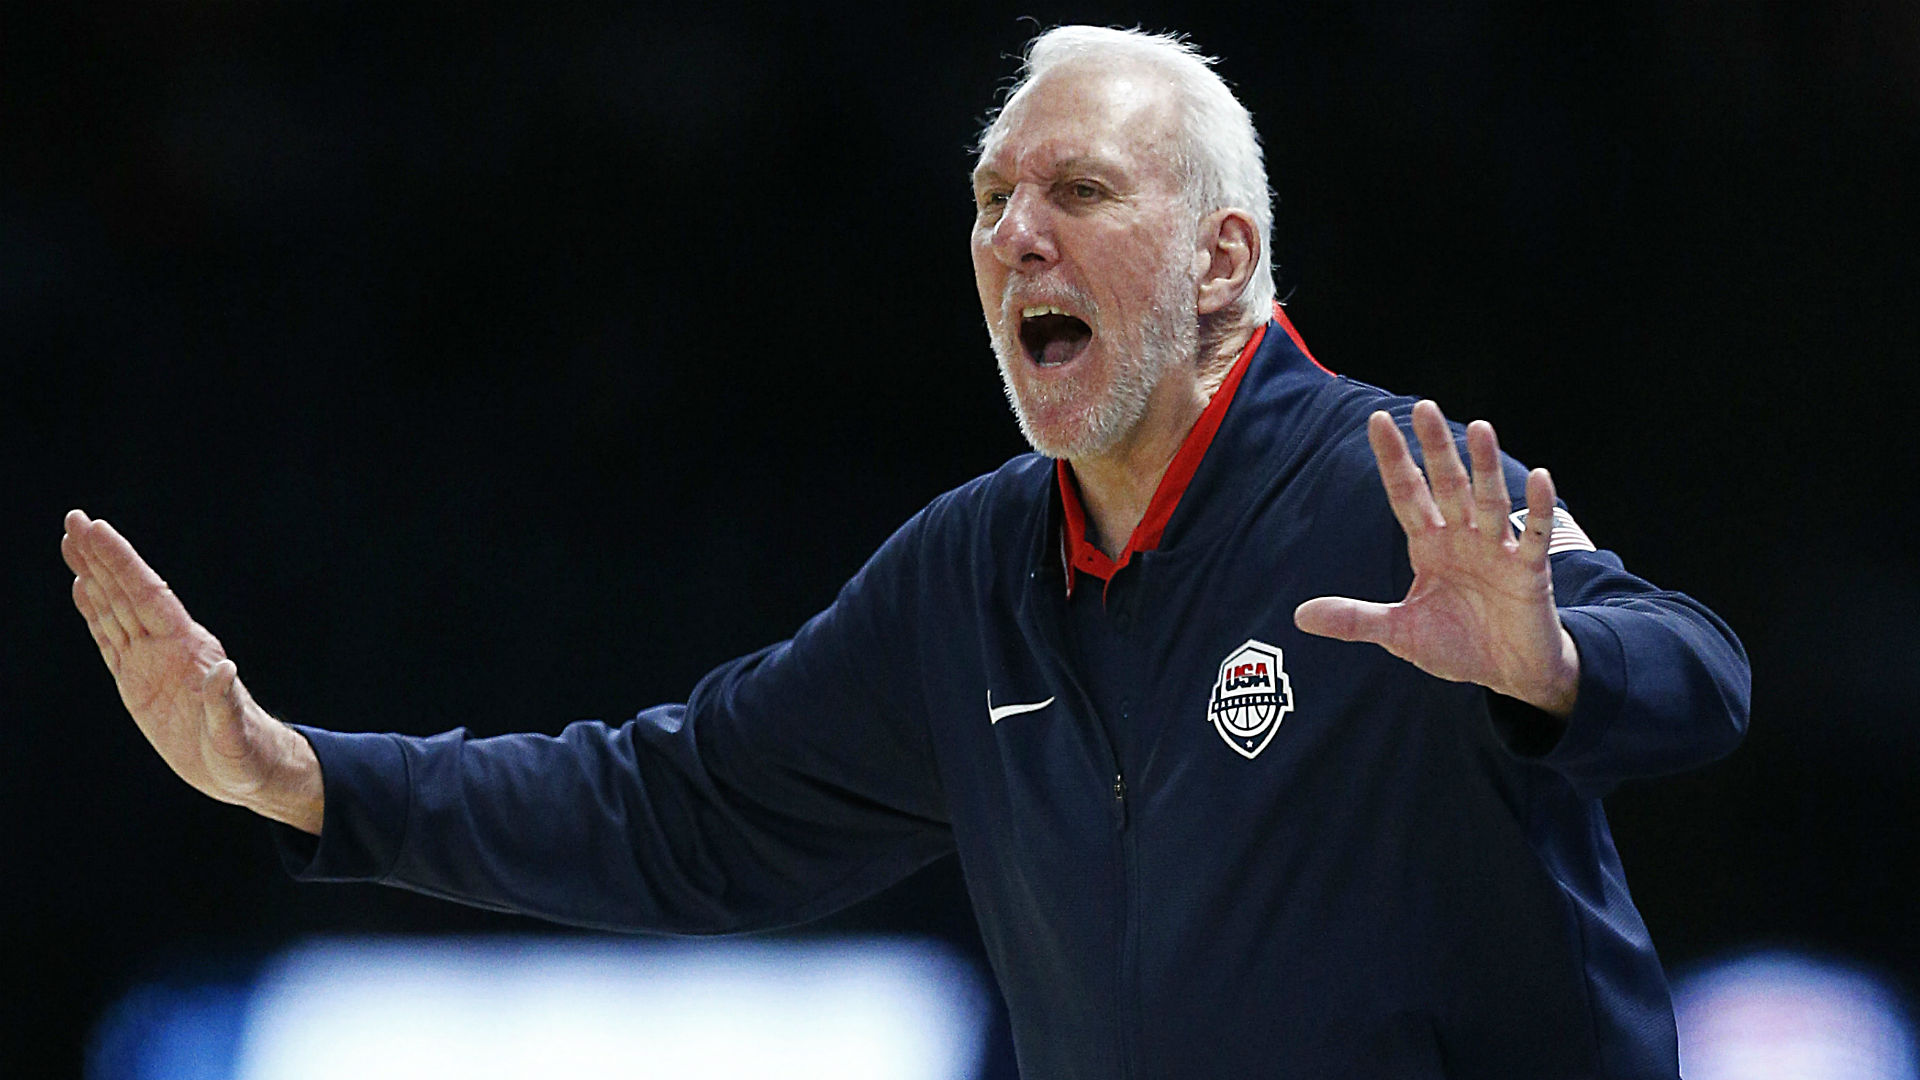 Gregg Popovich stresses learning, improvement after USA's 78-game winning streak ends